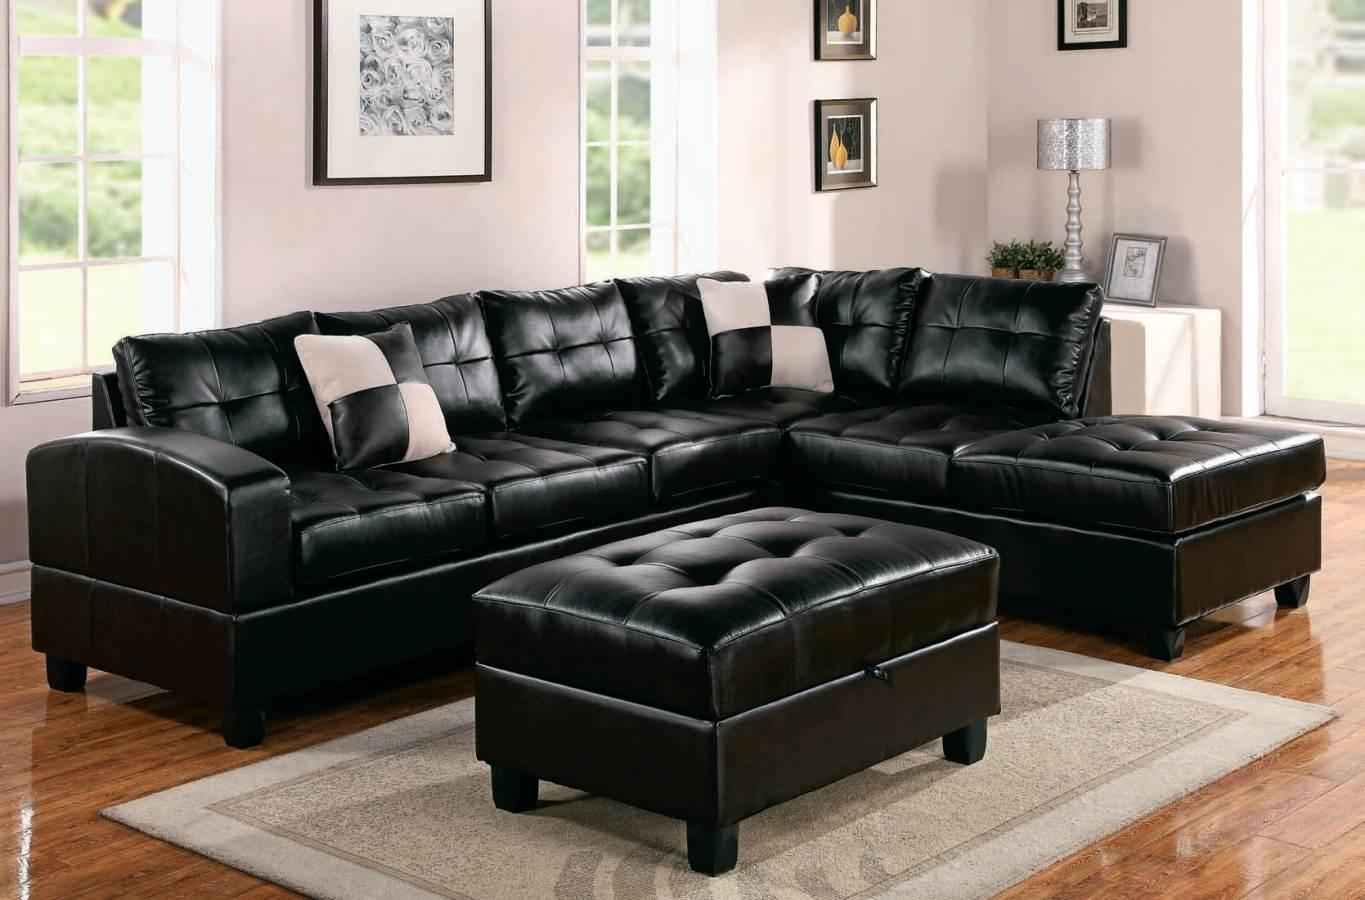 Furniture: Find The Perfect Leather Sectionals For Sale Pertaining To Black Leather Sectional Sleeper Sofas (Image 6 of 21)